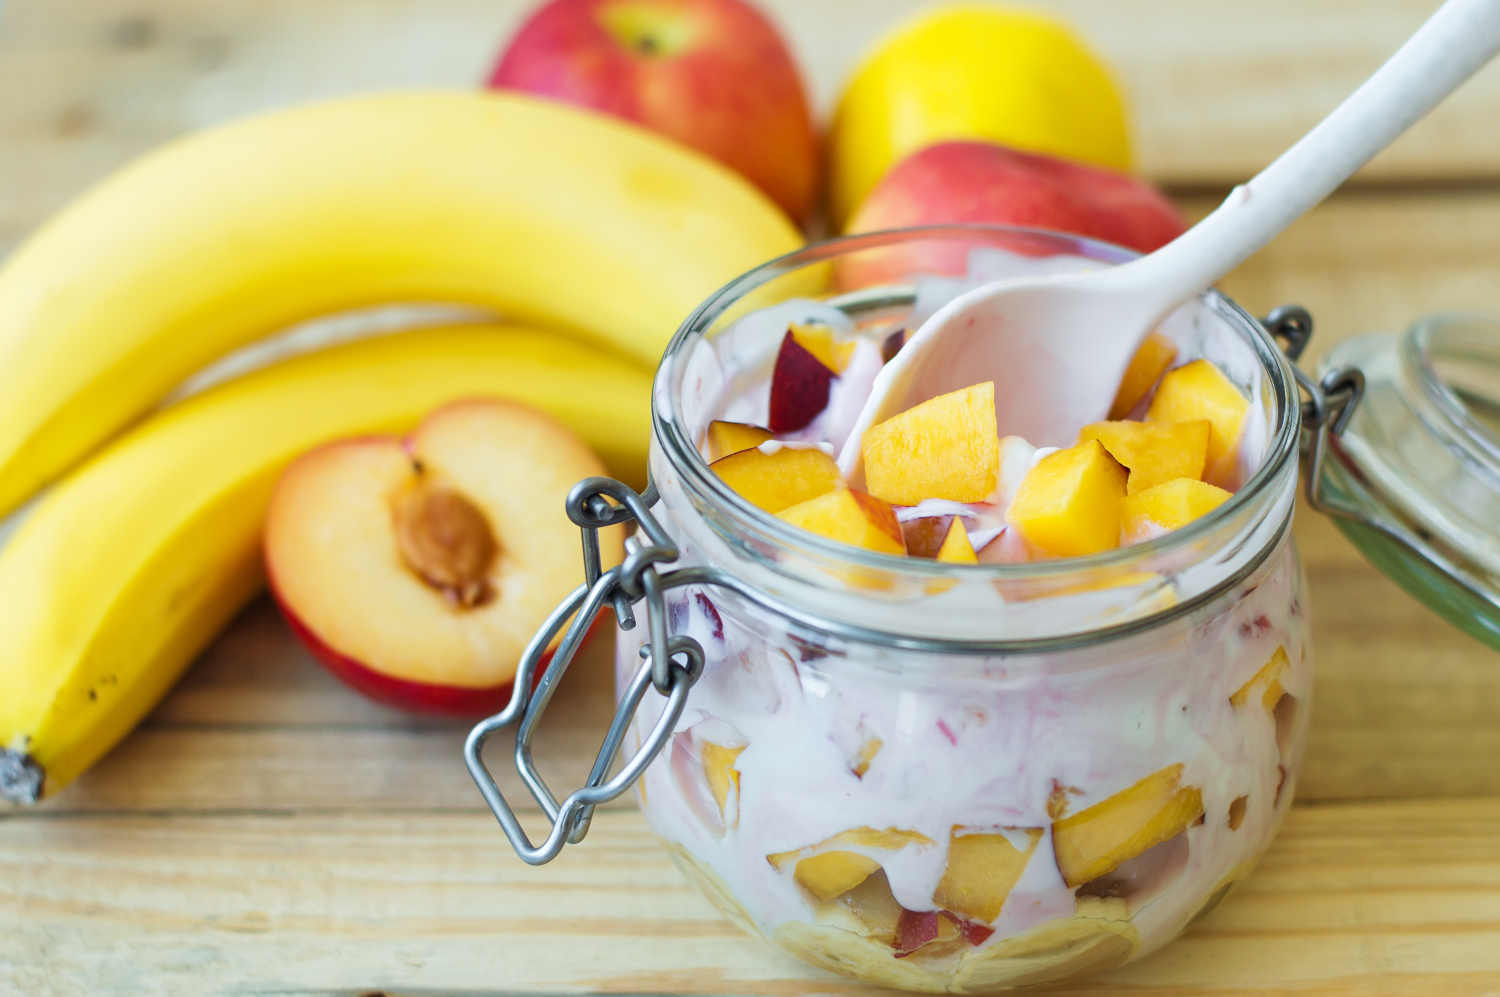 weightloss-recipe-peaches-banana-protein-yoghurt